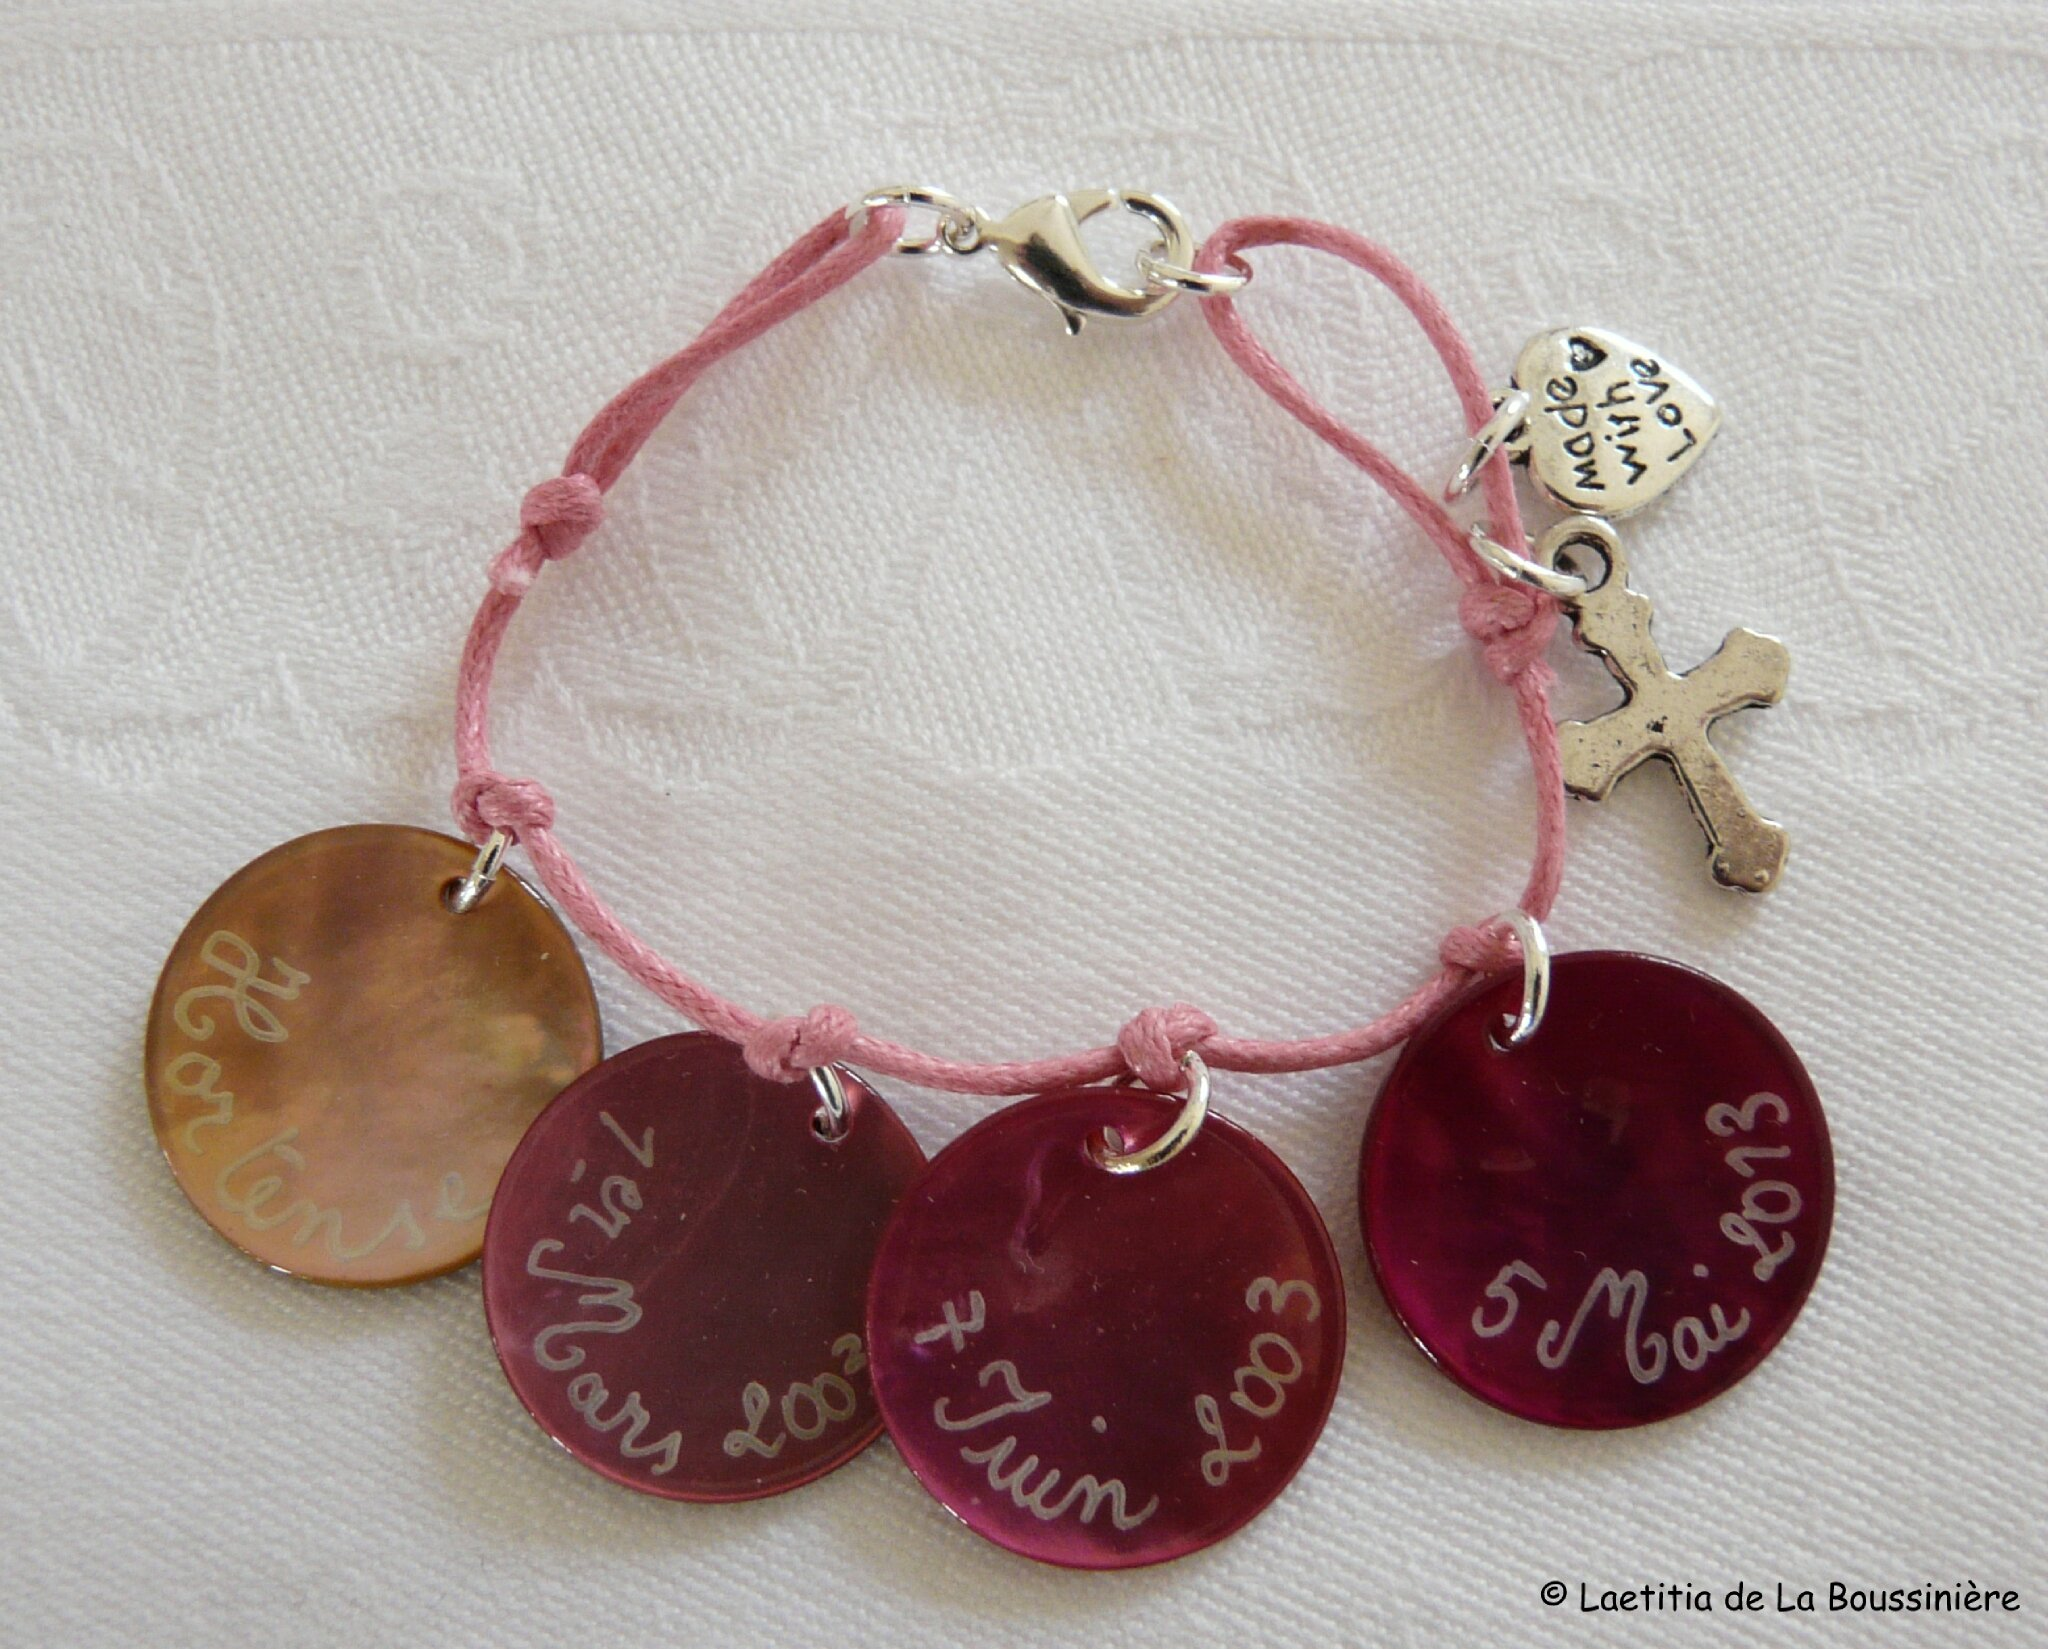 Bracelet de Communion (sur cordon fin rose) - 33 €